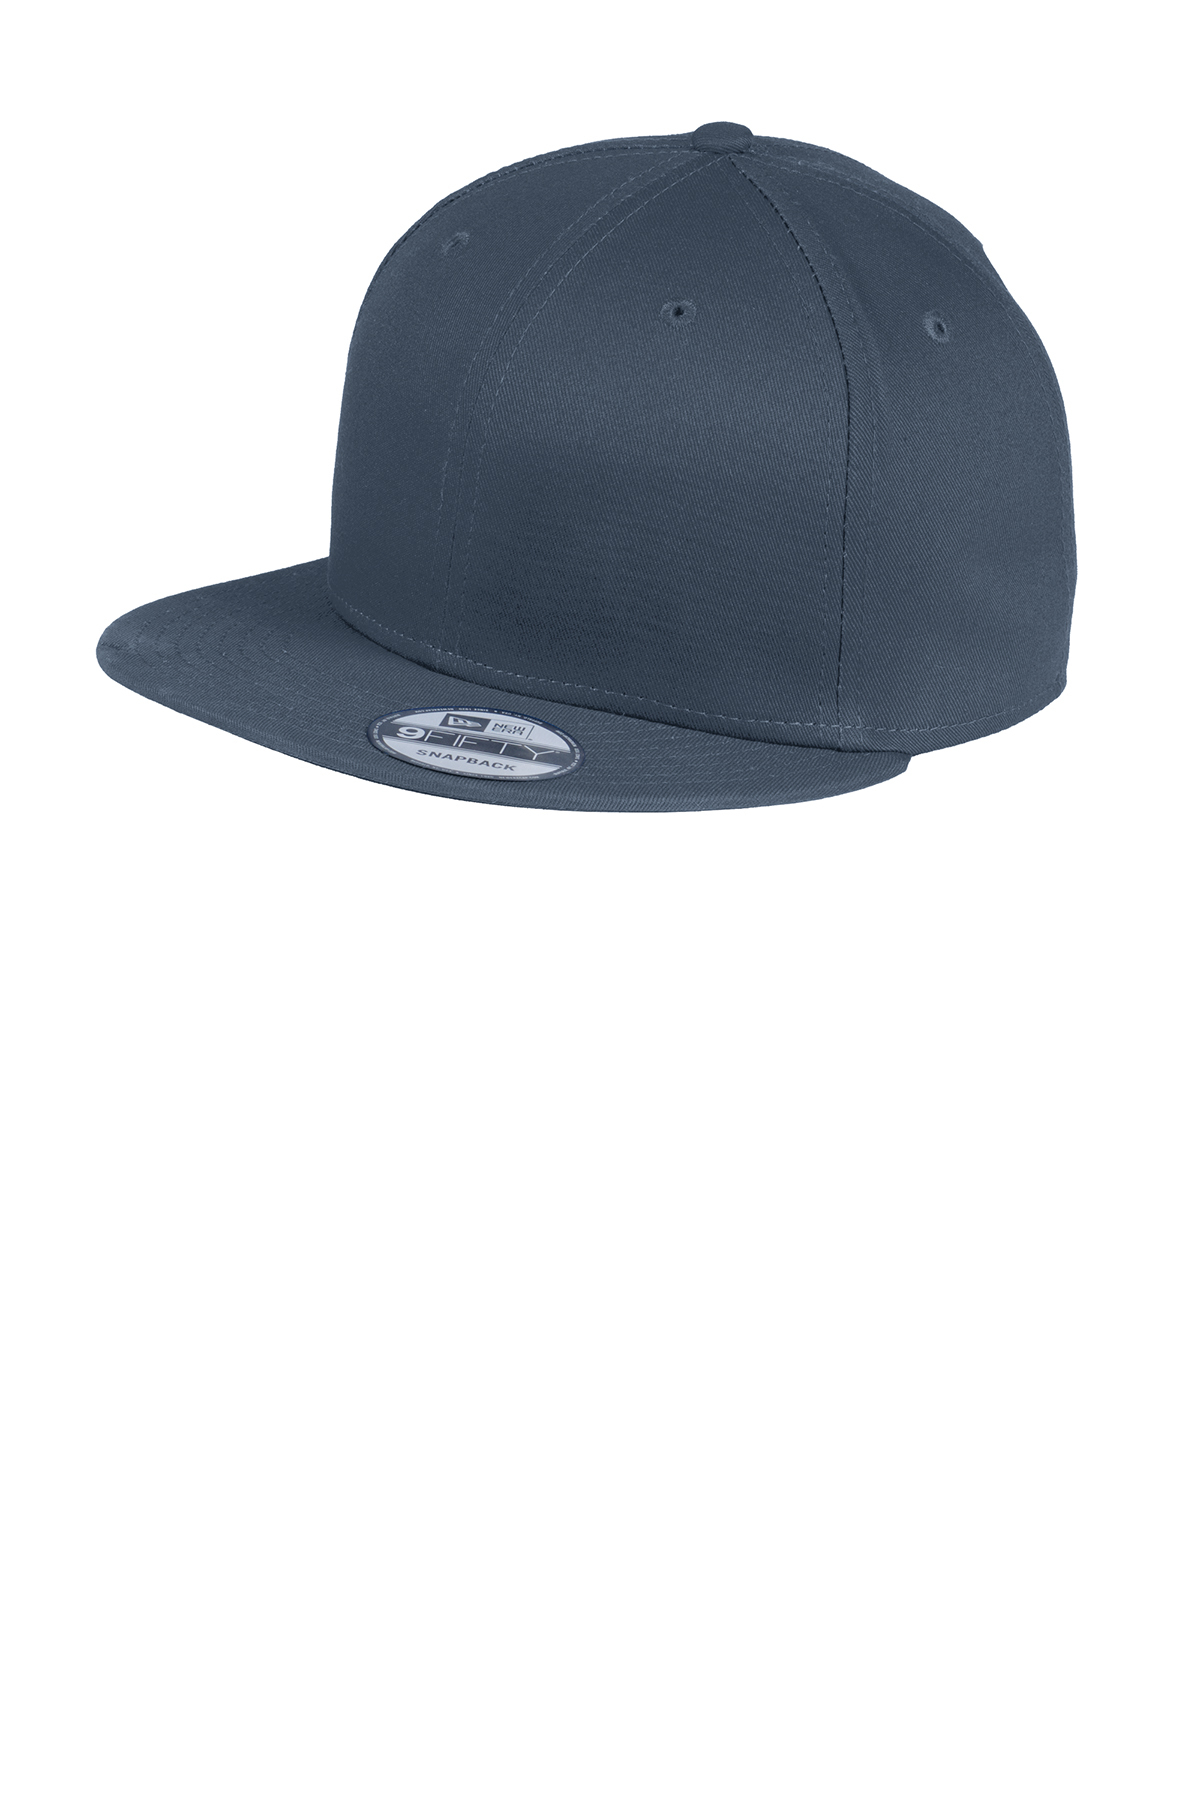 New Era® - Flat Bill Snapback Cap  0d659b40625d